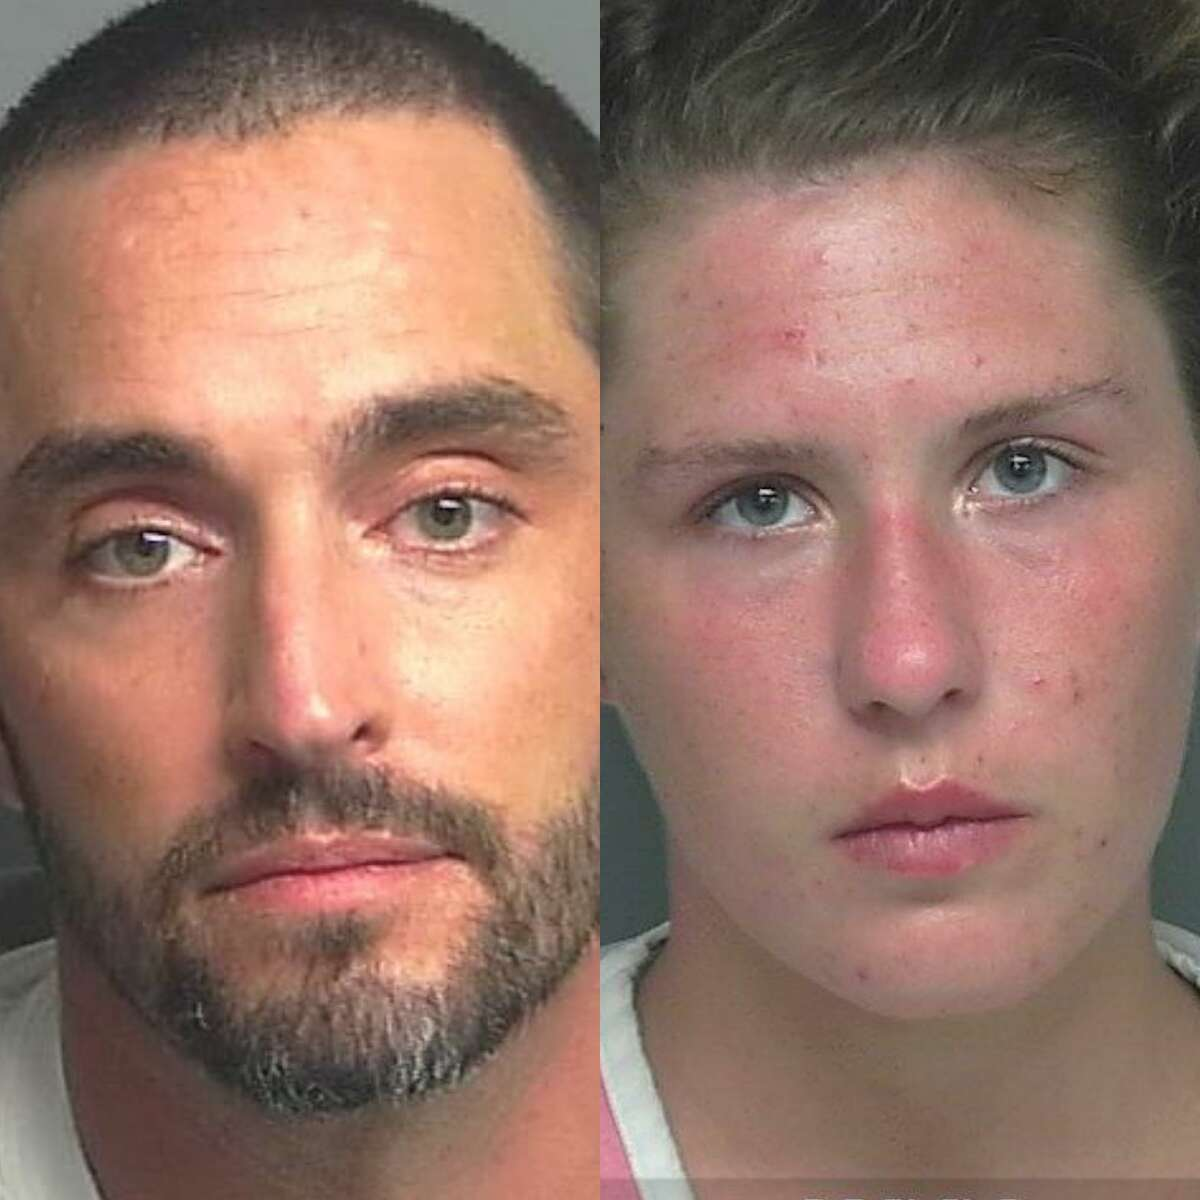 Jason Devon Mastrantonio, 42, of Magnolia, and Chelsea Breanne Phillips, 24, of Spring, are being charged with possession with intent to deliver or manufacture a controlled substance, a first-degree felony.